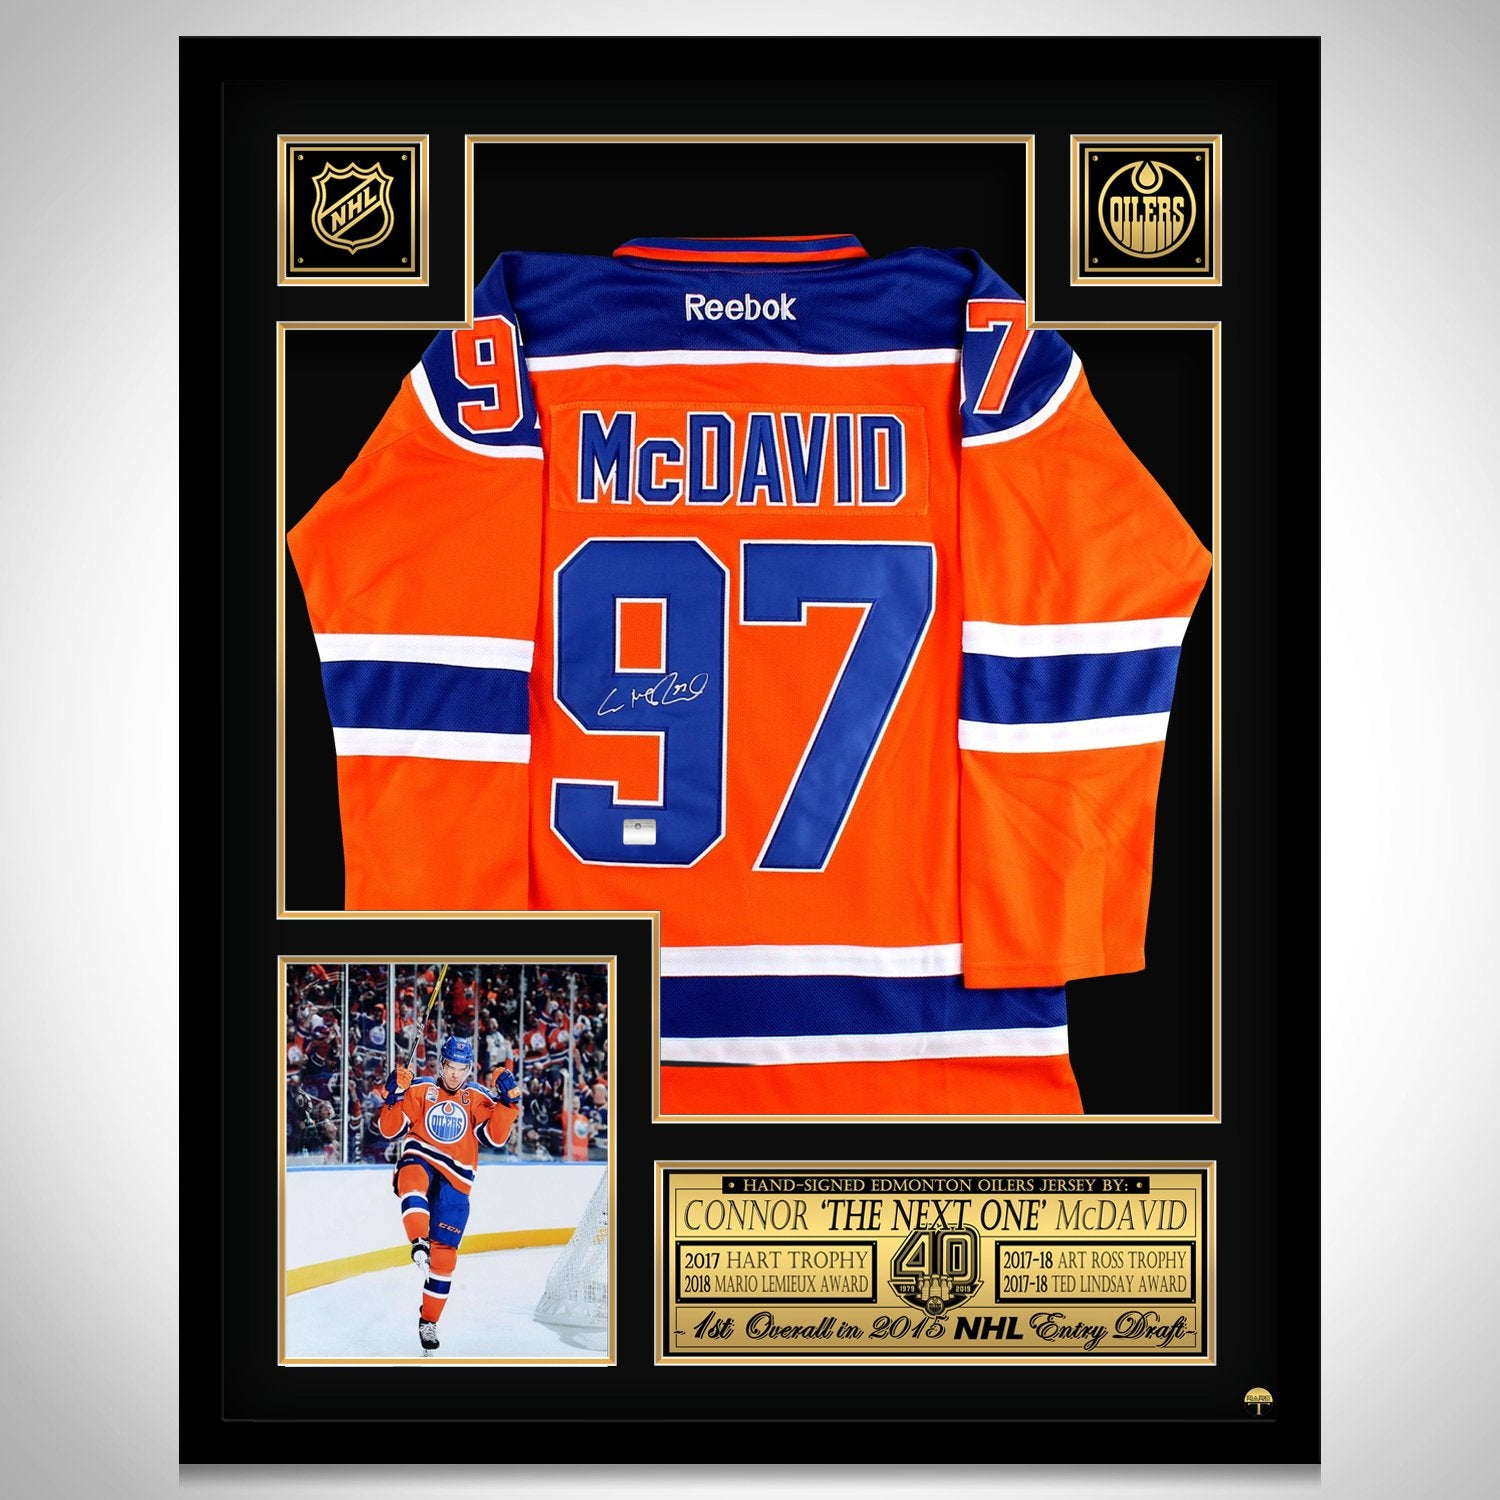 timeless design 25fc9 d8a16 Connor McDavid- Hand-Signed Edmonton Oilers Jersey Museum Frame Now Adidas